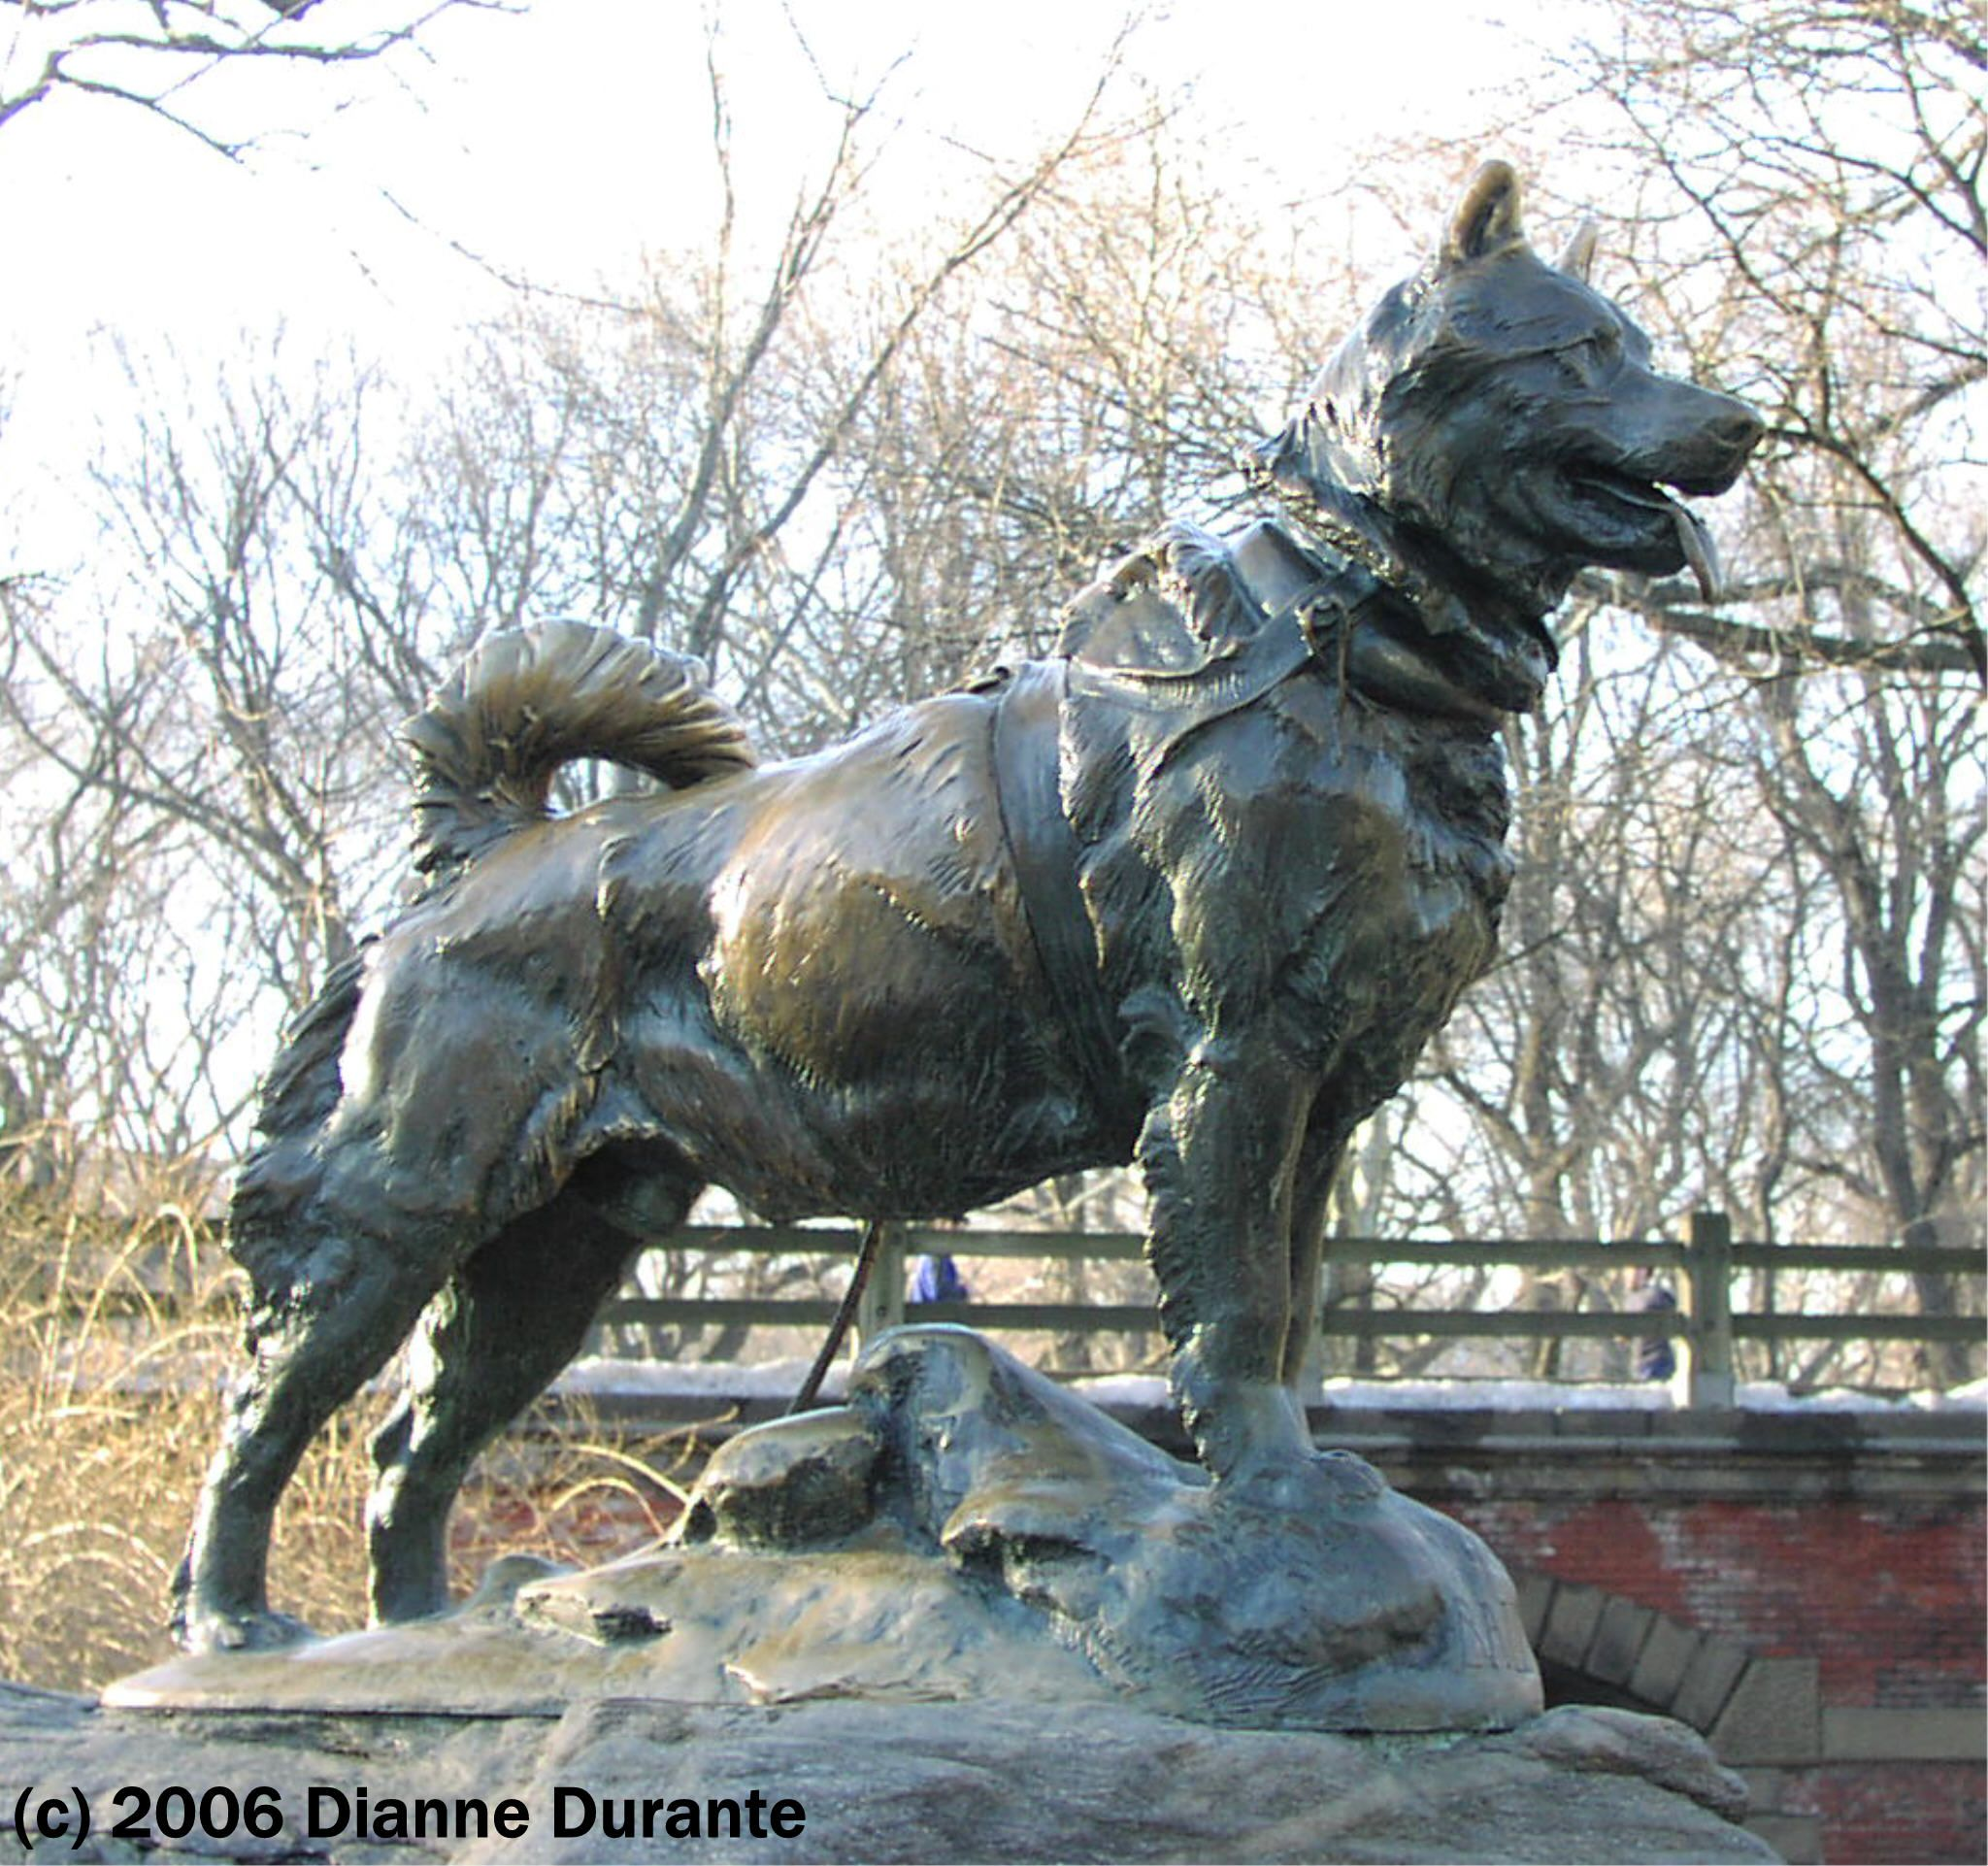 Balto sculpture in Central Park